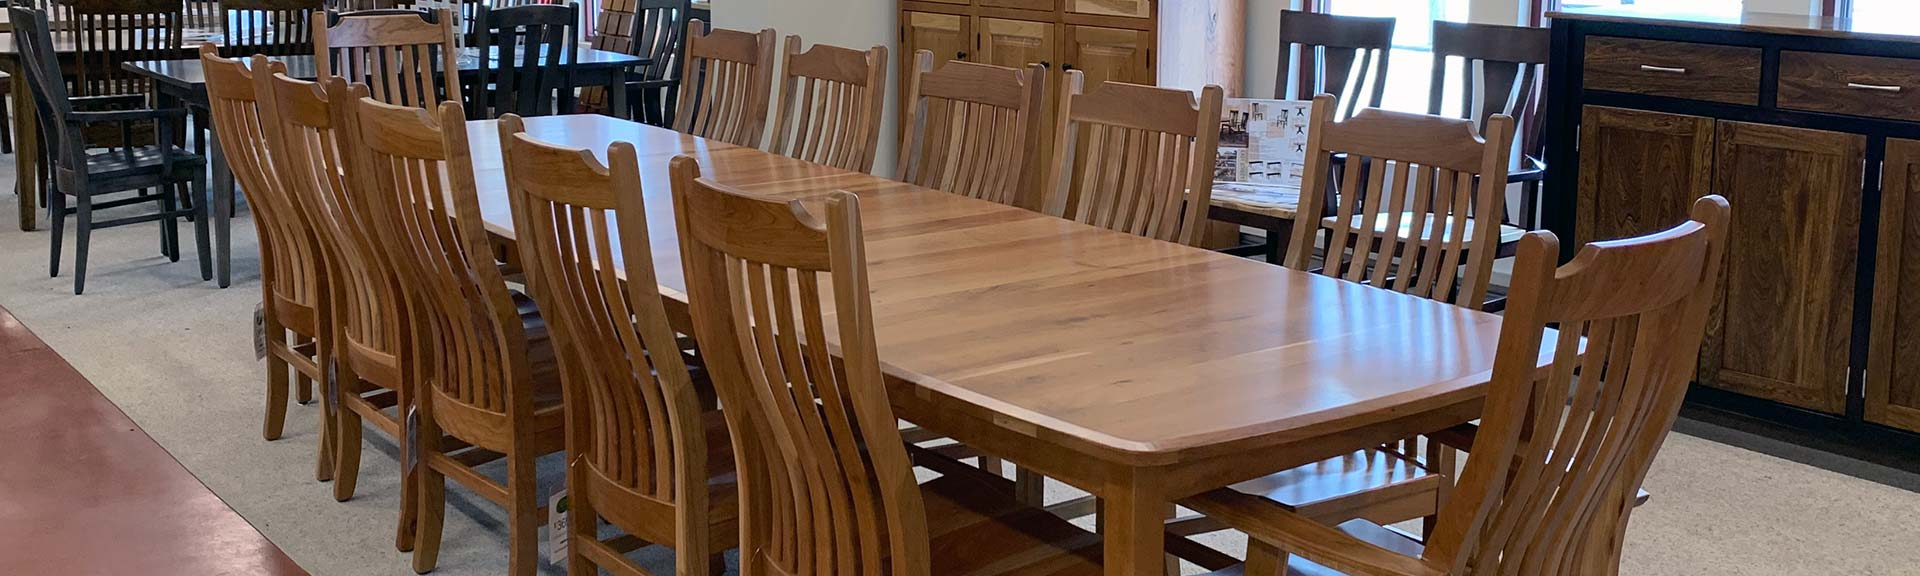 With This Being Said We Understand The Importance Of Offering A Large Variety Dining Room Sets To Accommodate Families Both And Small